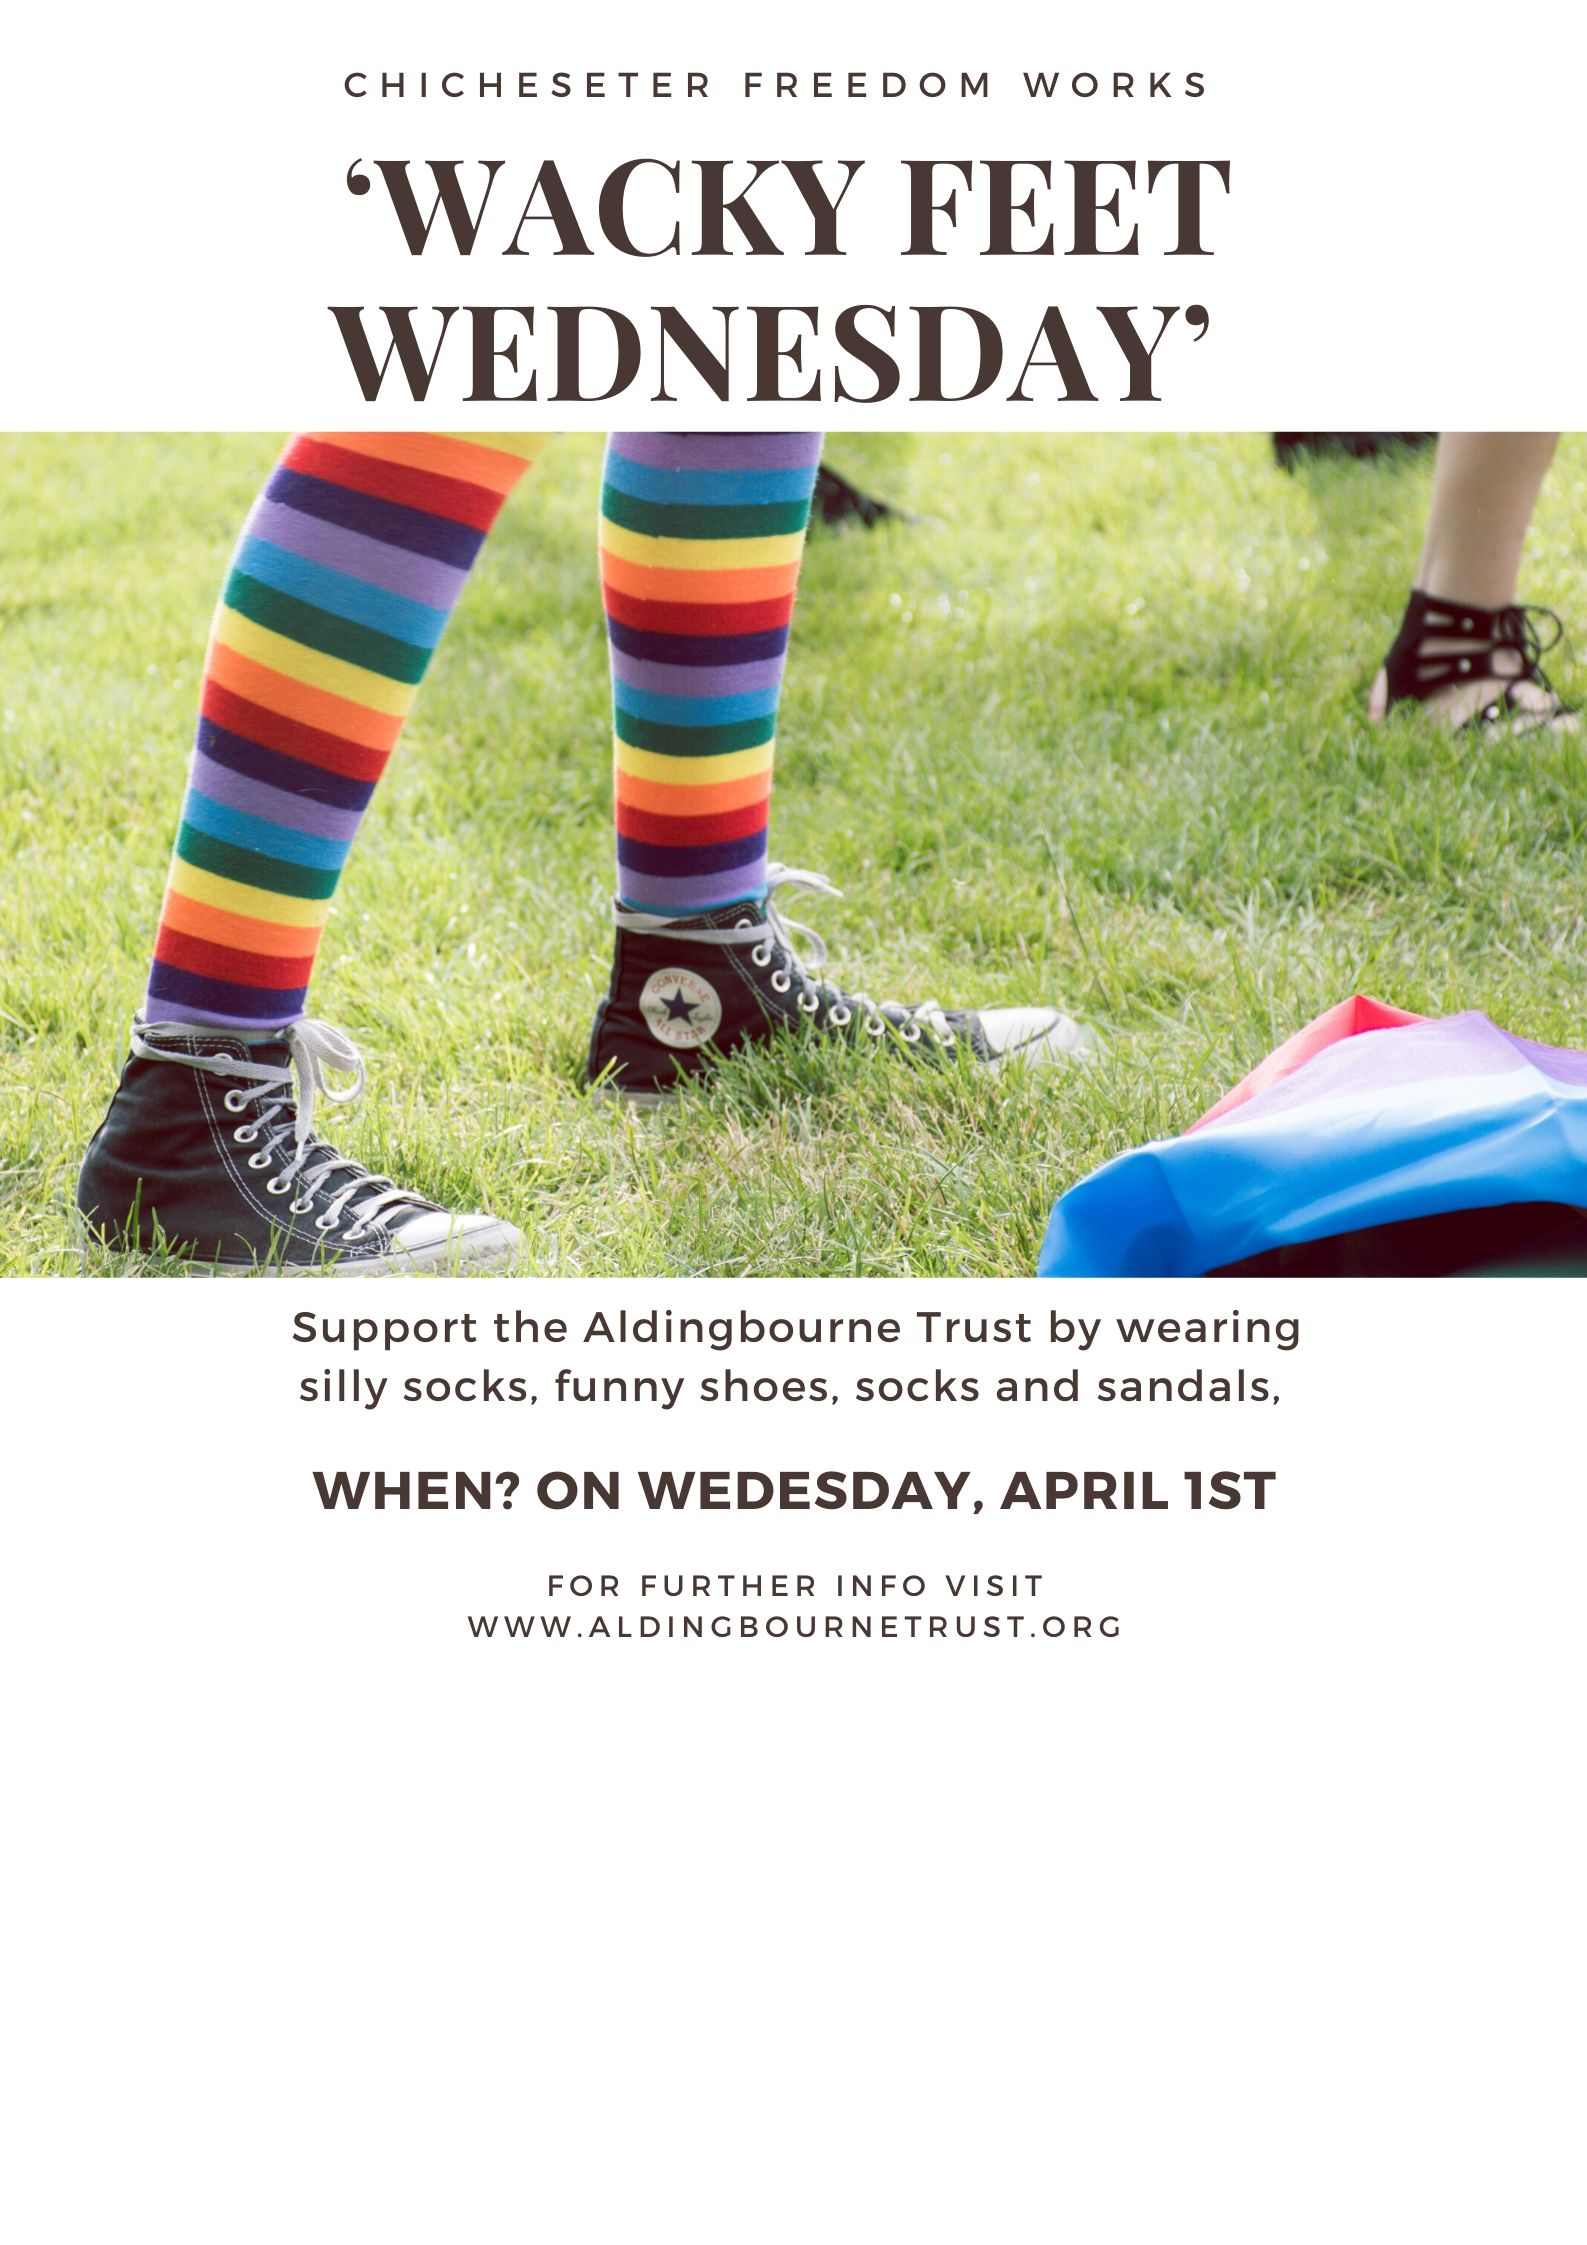 Wacky Feet Wednesday in support of The Aldingbourne Trust